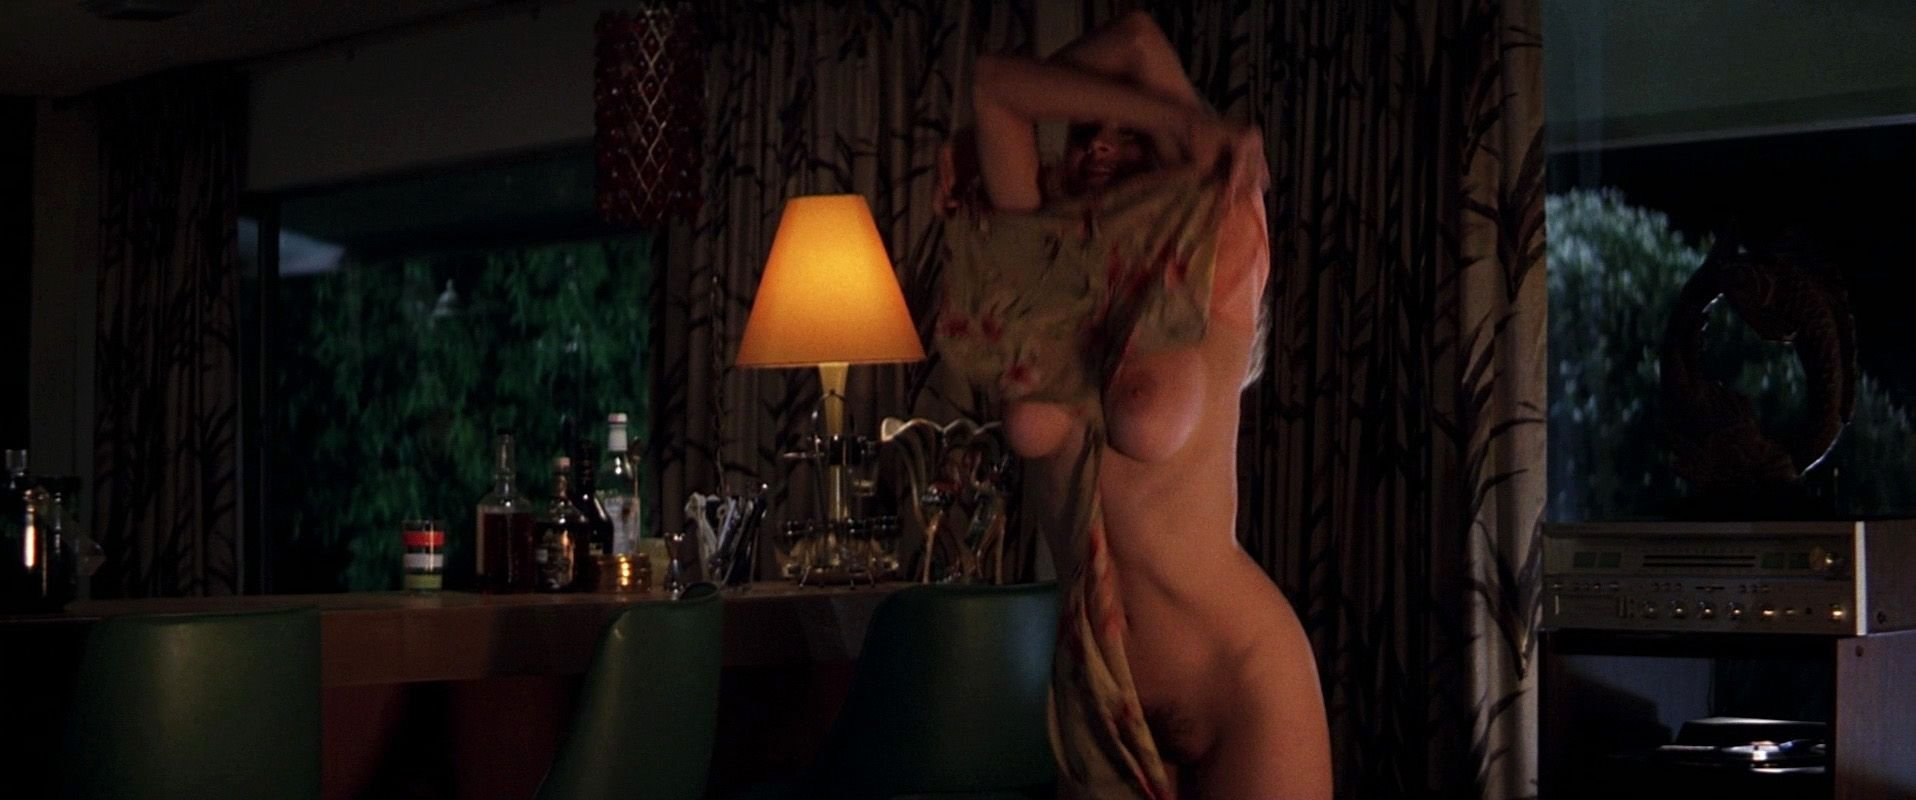 nude pics of heather graham